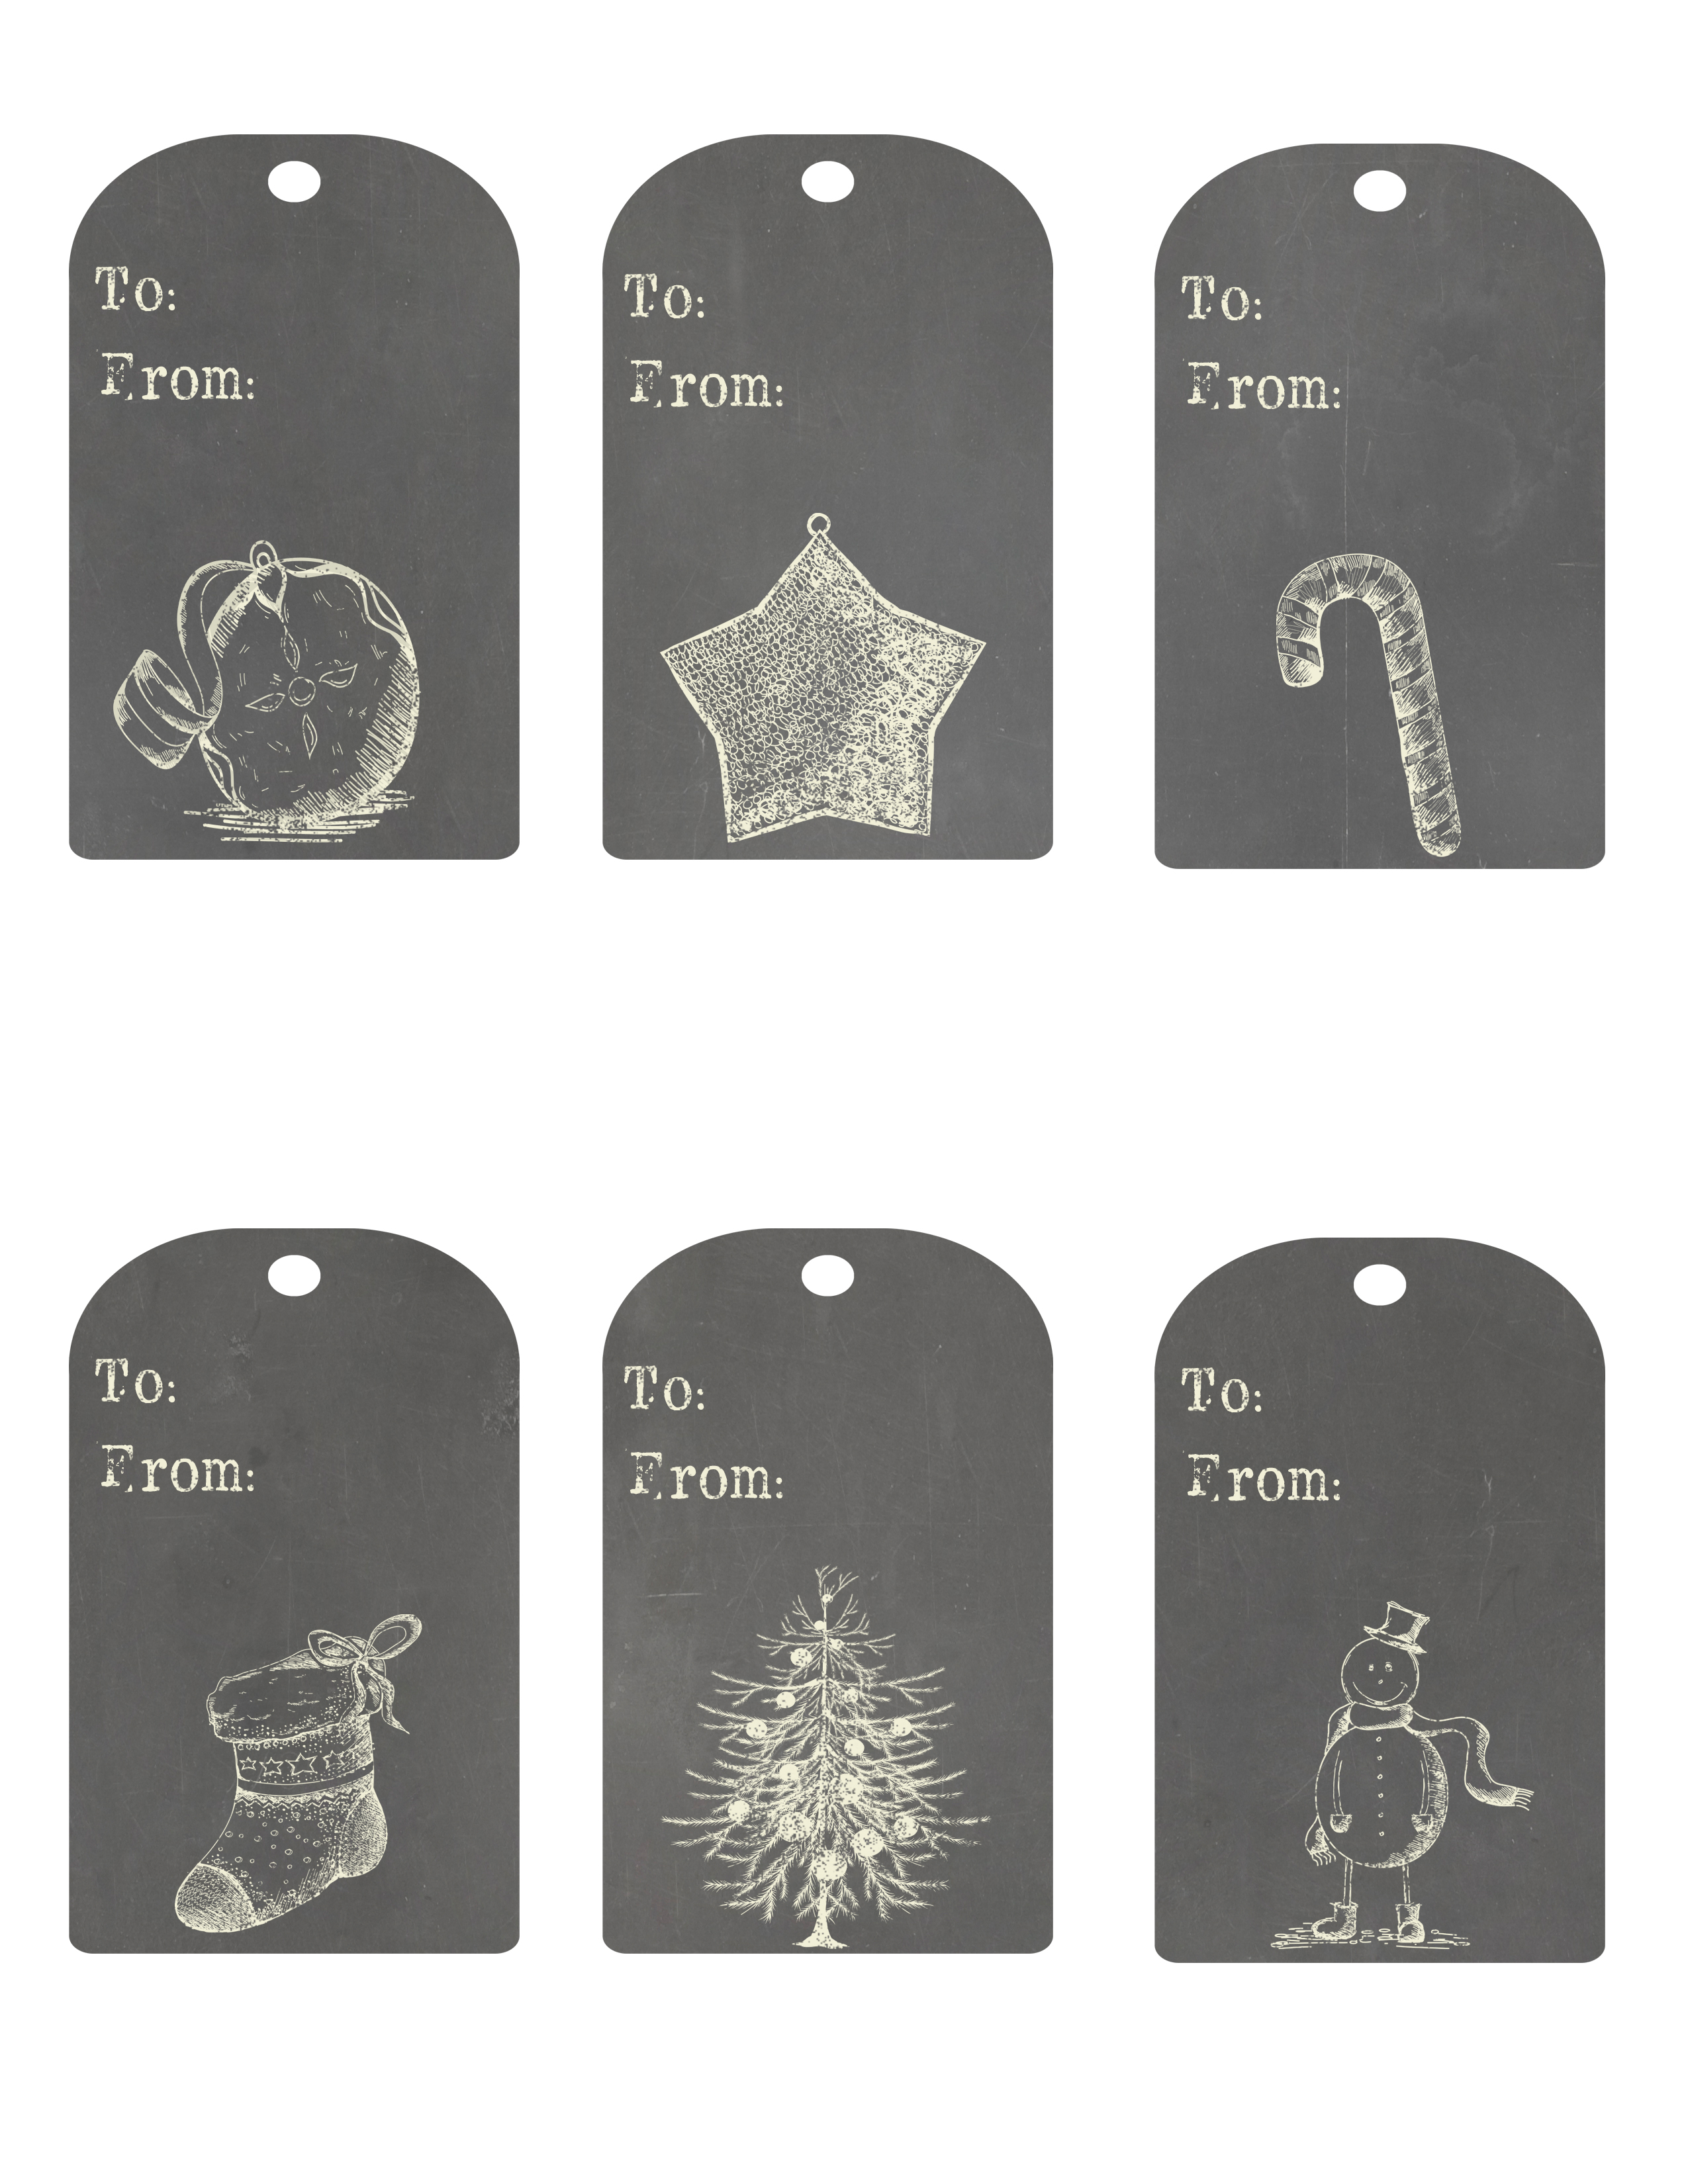 This is an image of Free Printable Chalkboard Labels with regard to organizing